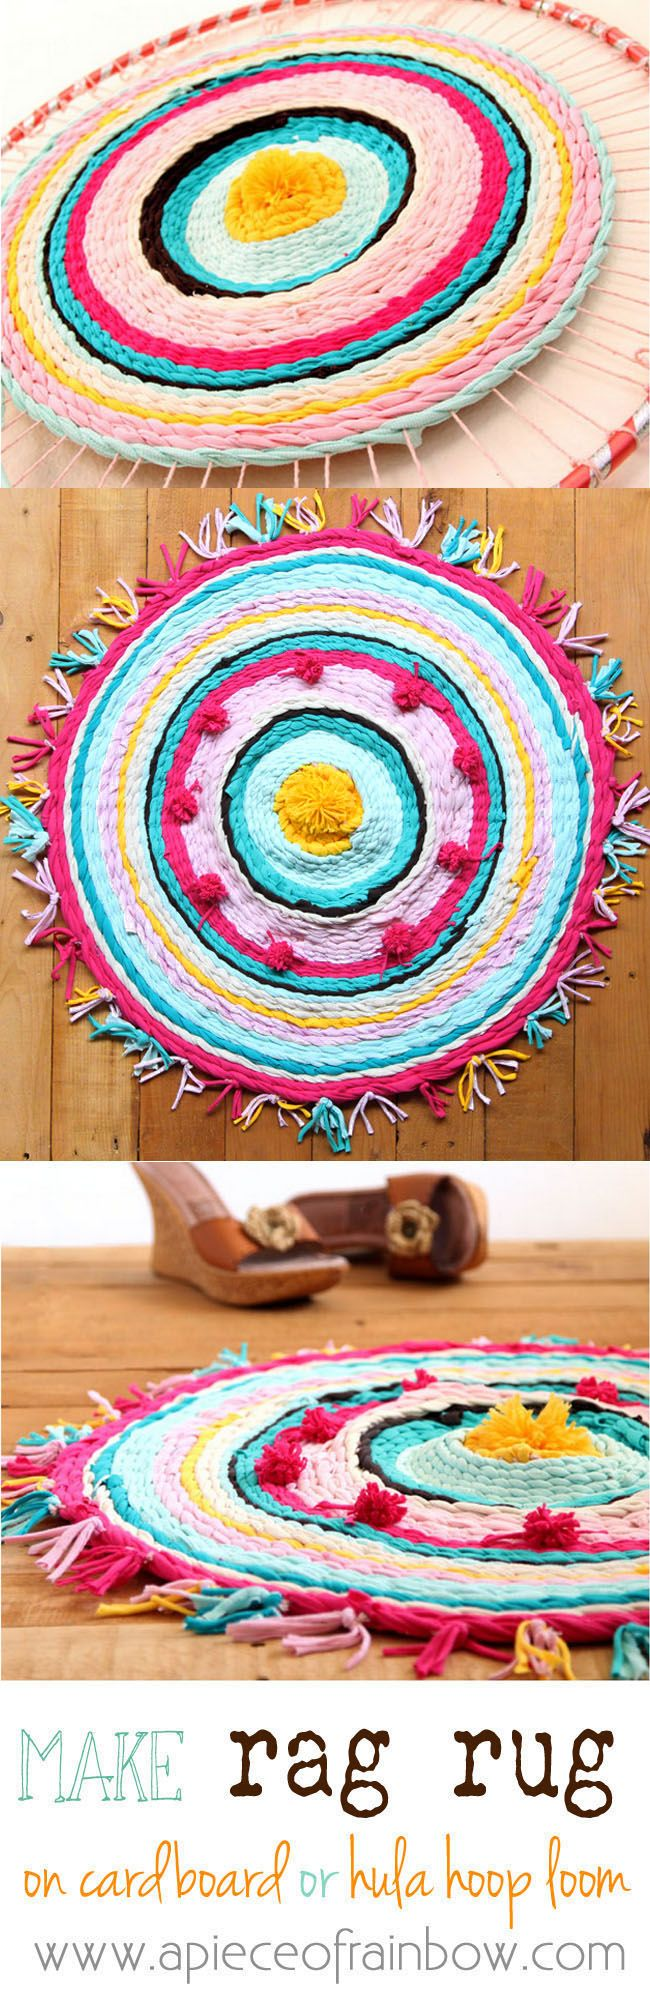 Really fun and detailed tutorial on how to make rag rug from old t-shirts, and how to weave beautiful rugs on a cardboard loom or hula hoop loom!A Piece Of Rainbow